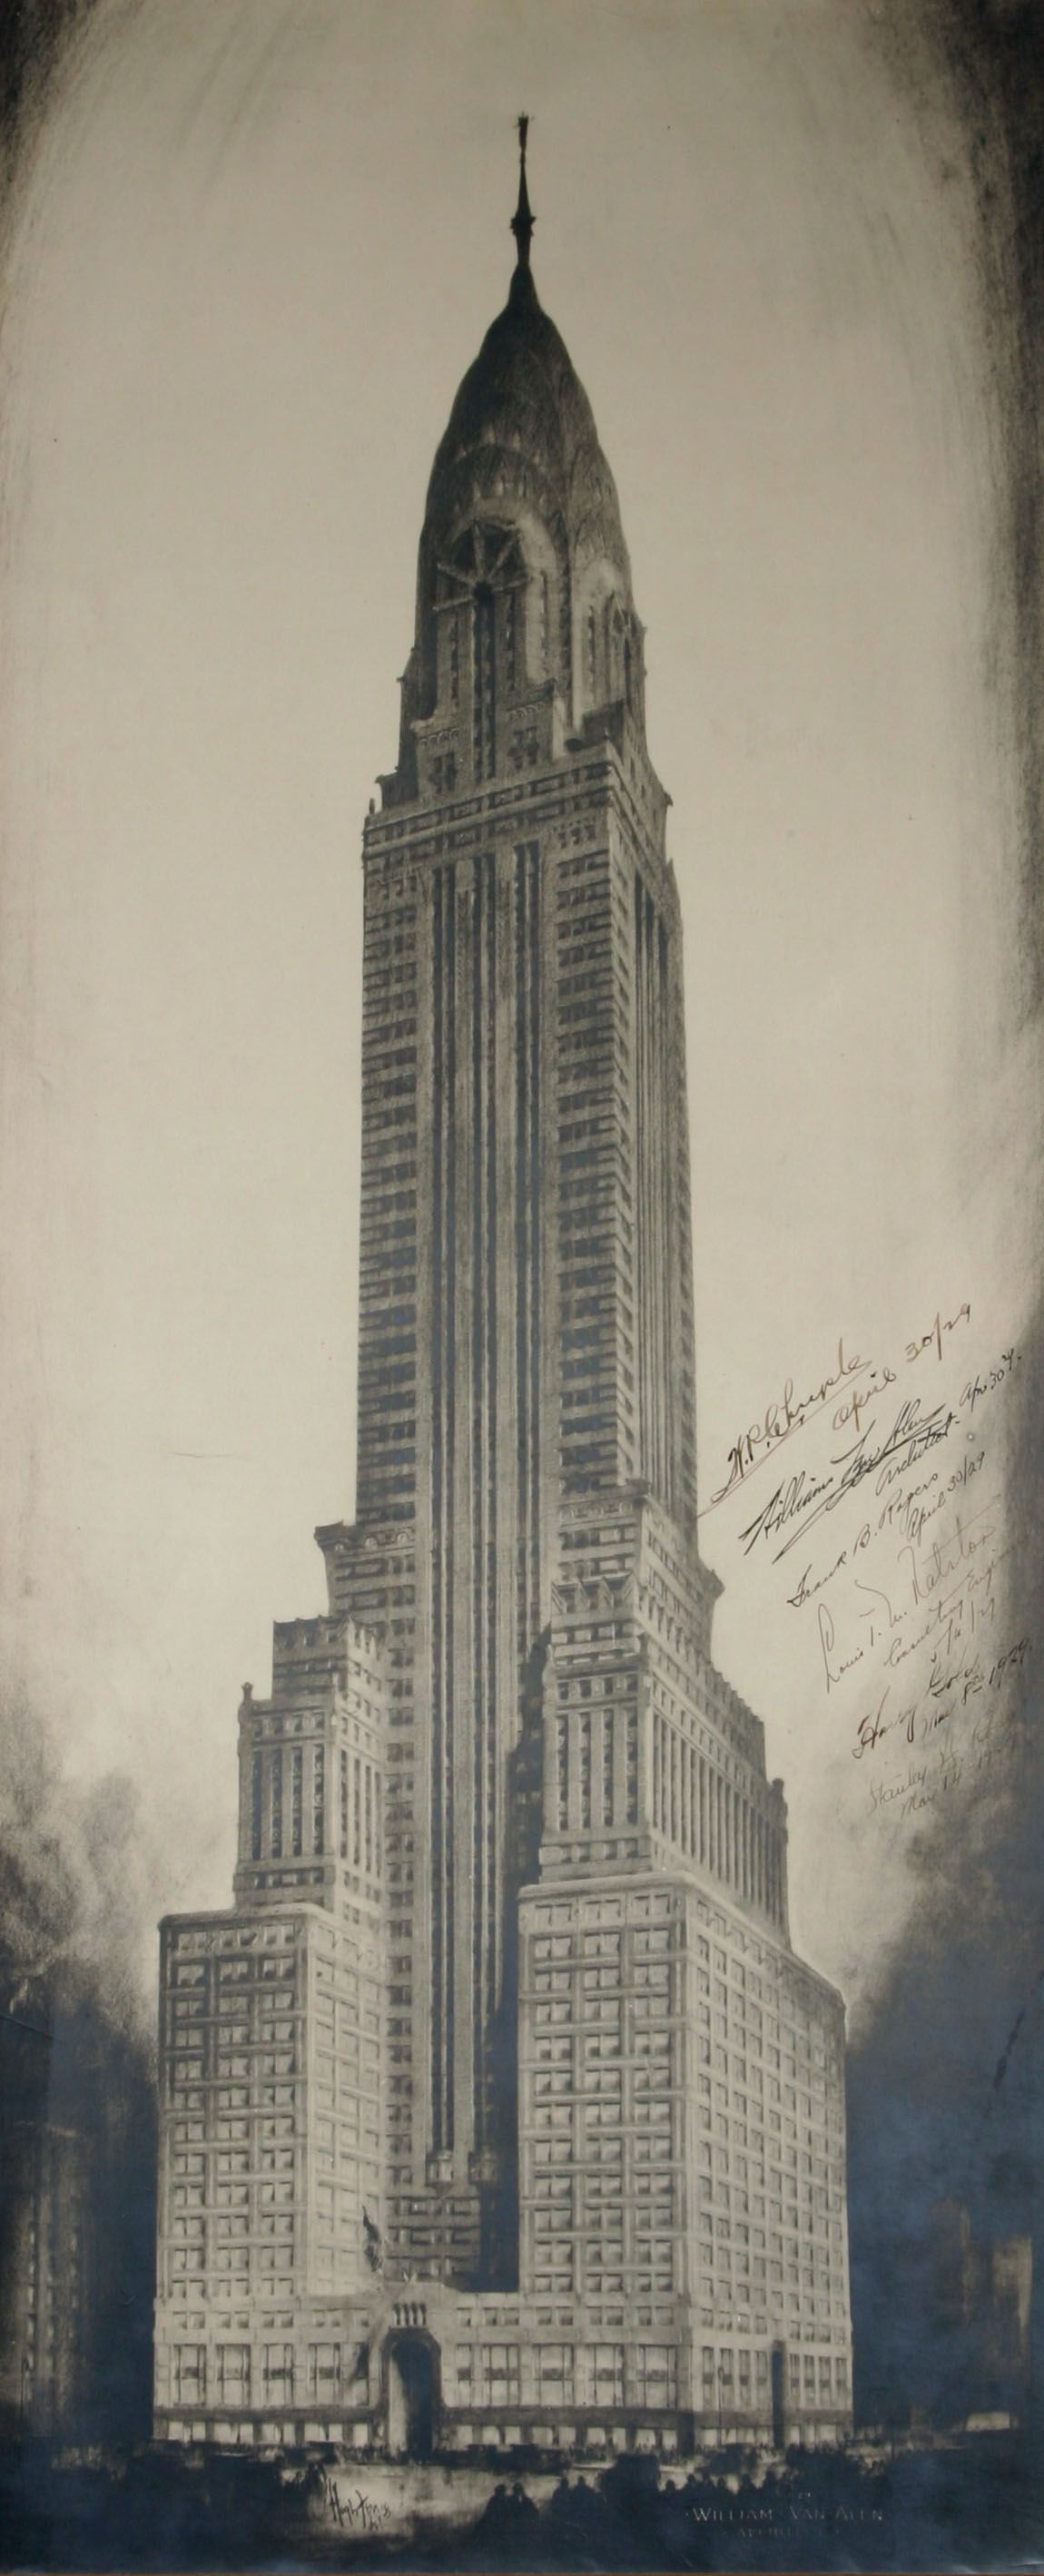 The Chrysler Building Architectural Drawings By The Great Hugh